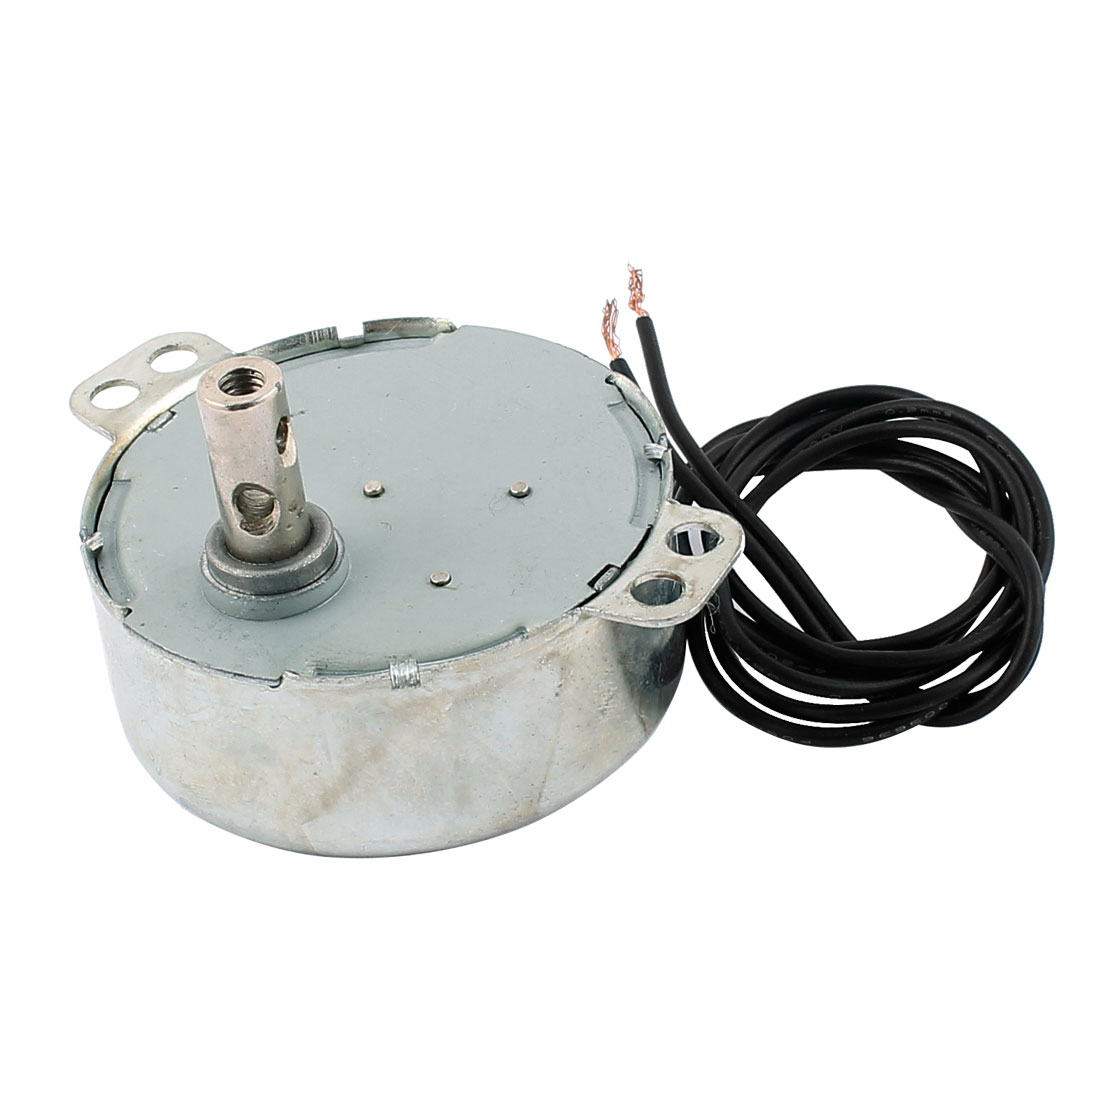 AC 220-240V 30-36R/Min CCW/CW Direction 4W 50/60Hz Frequency AC Synchronous Motor